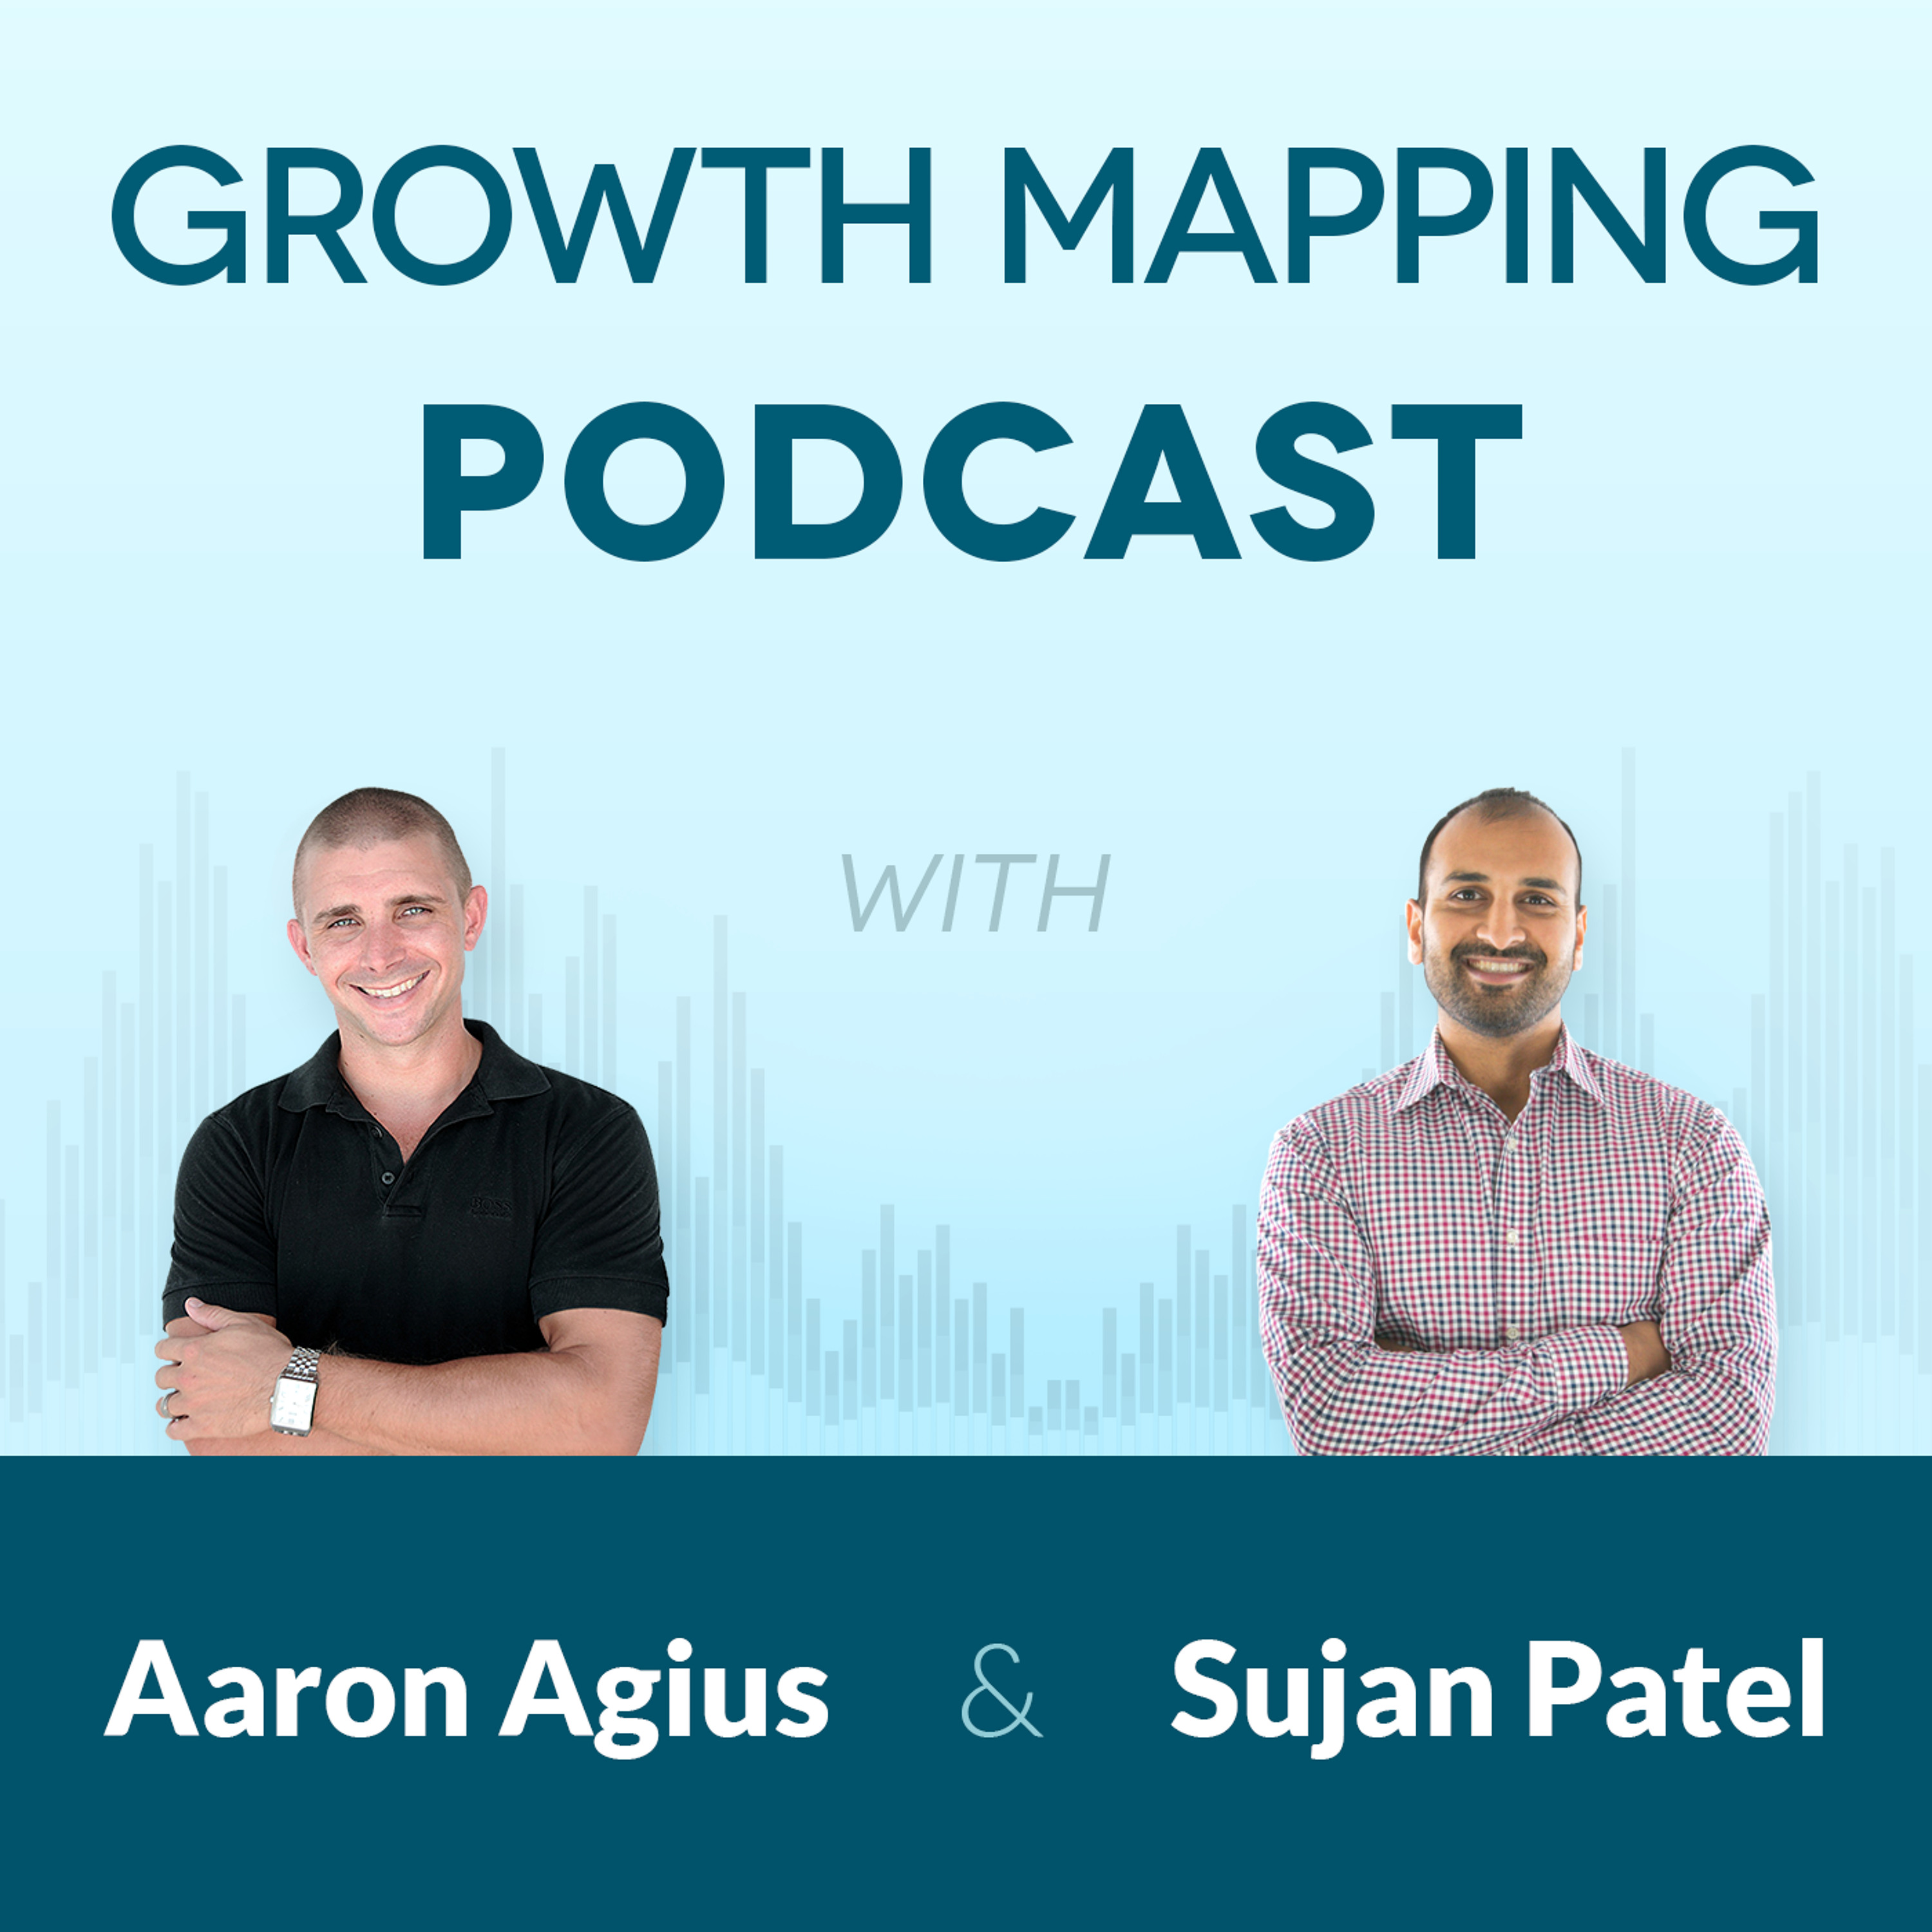 Ep 39 - What to Do When Your Business Stops Growing